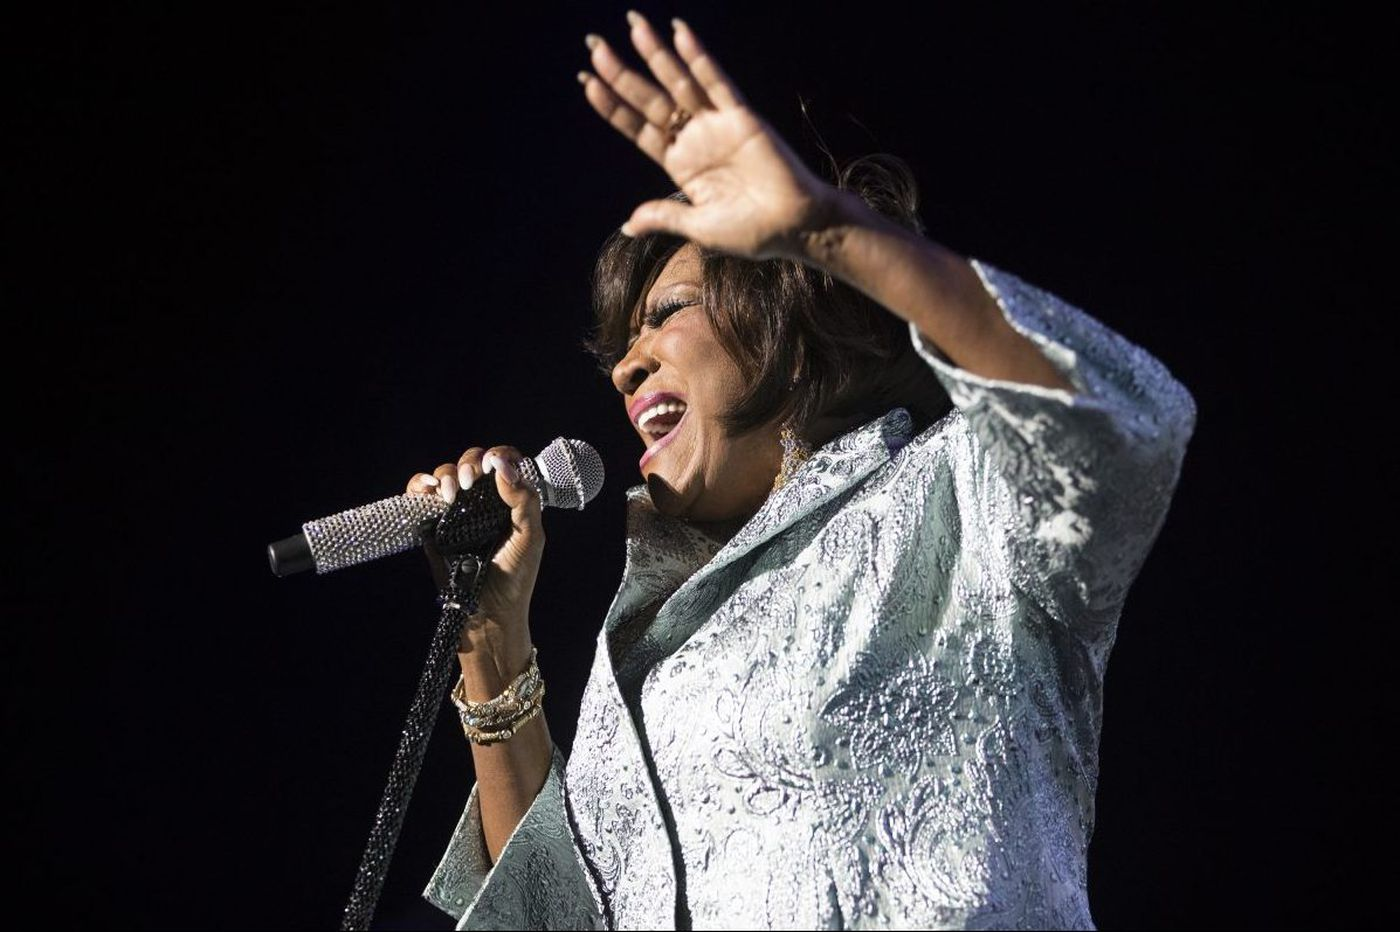 Patti LaBelle dedicates 'You Are My Friend' to Aretha Franklin during Dell Music Center performance